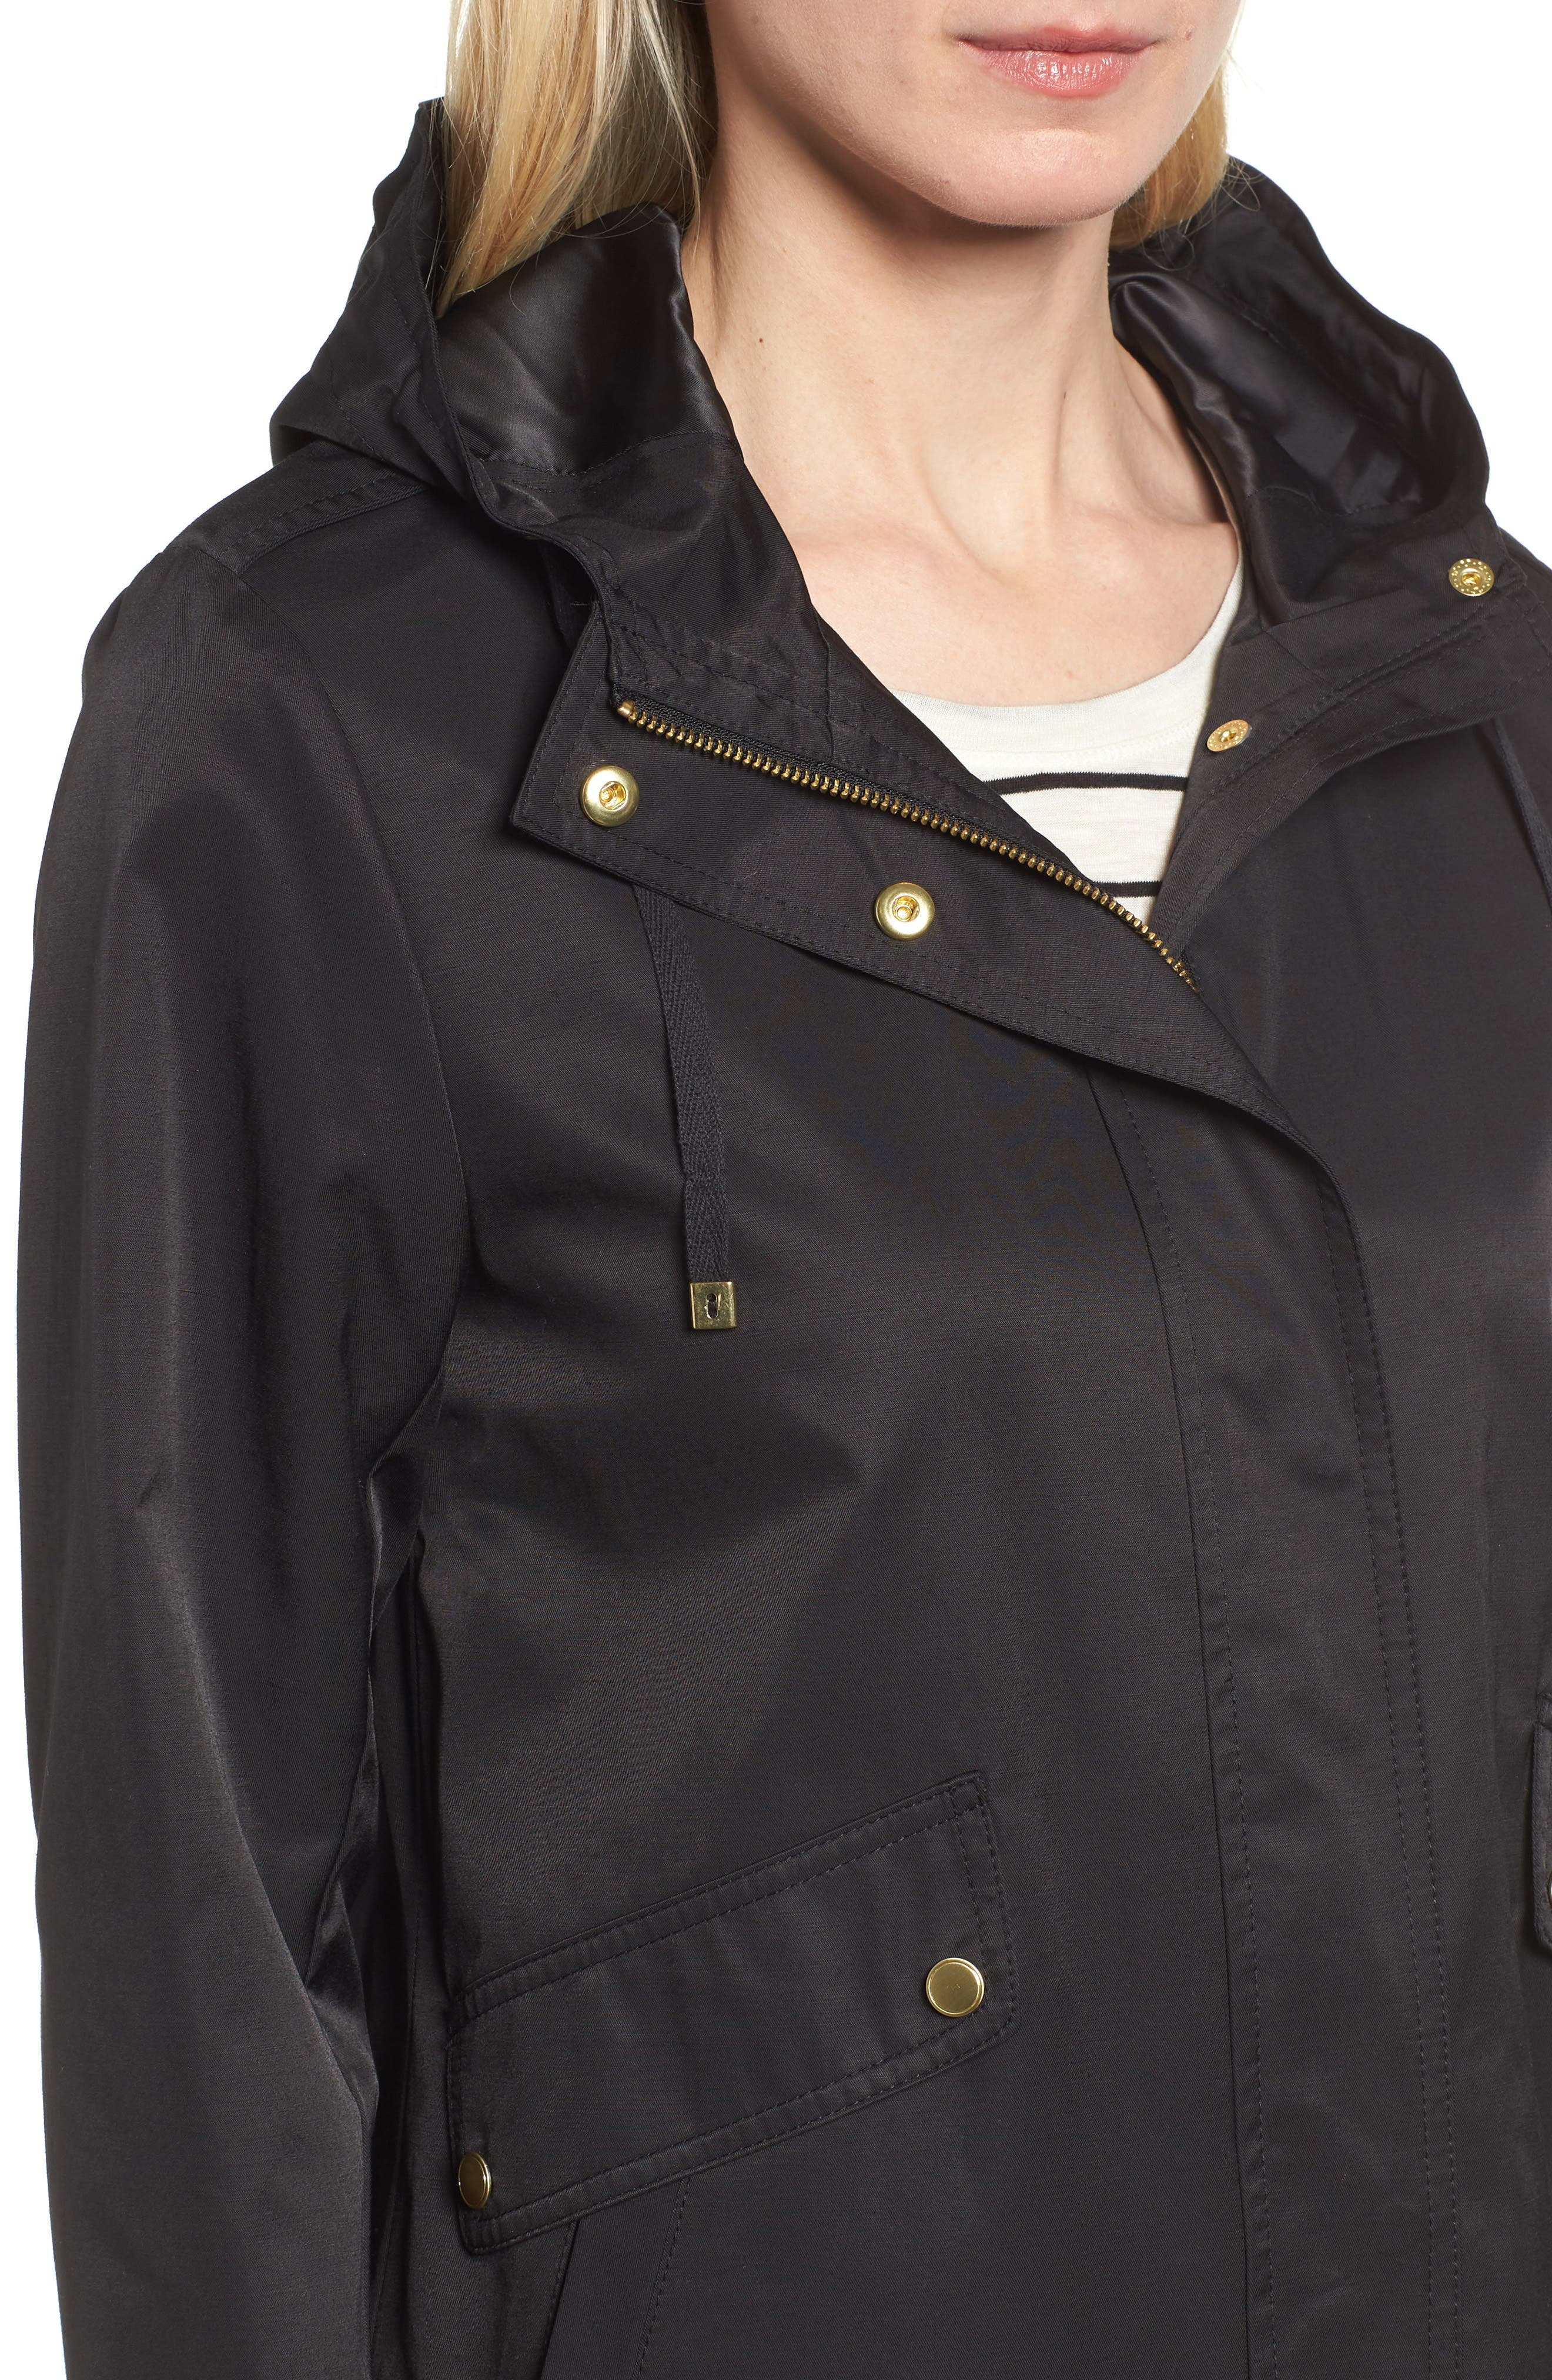 A-Line Jacket with Hood,                             Alternate thumbnail 4, color,                             Black